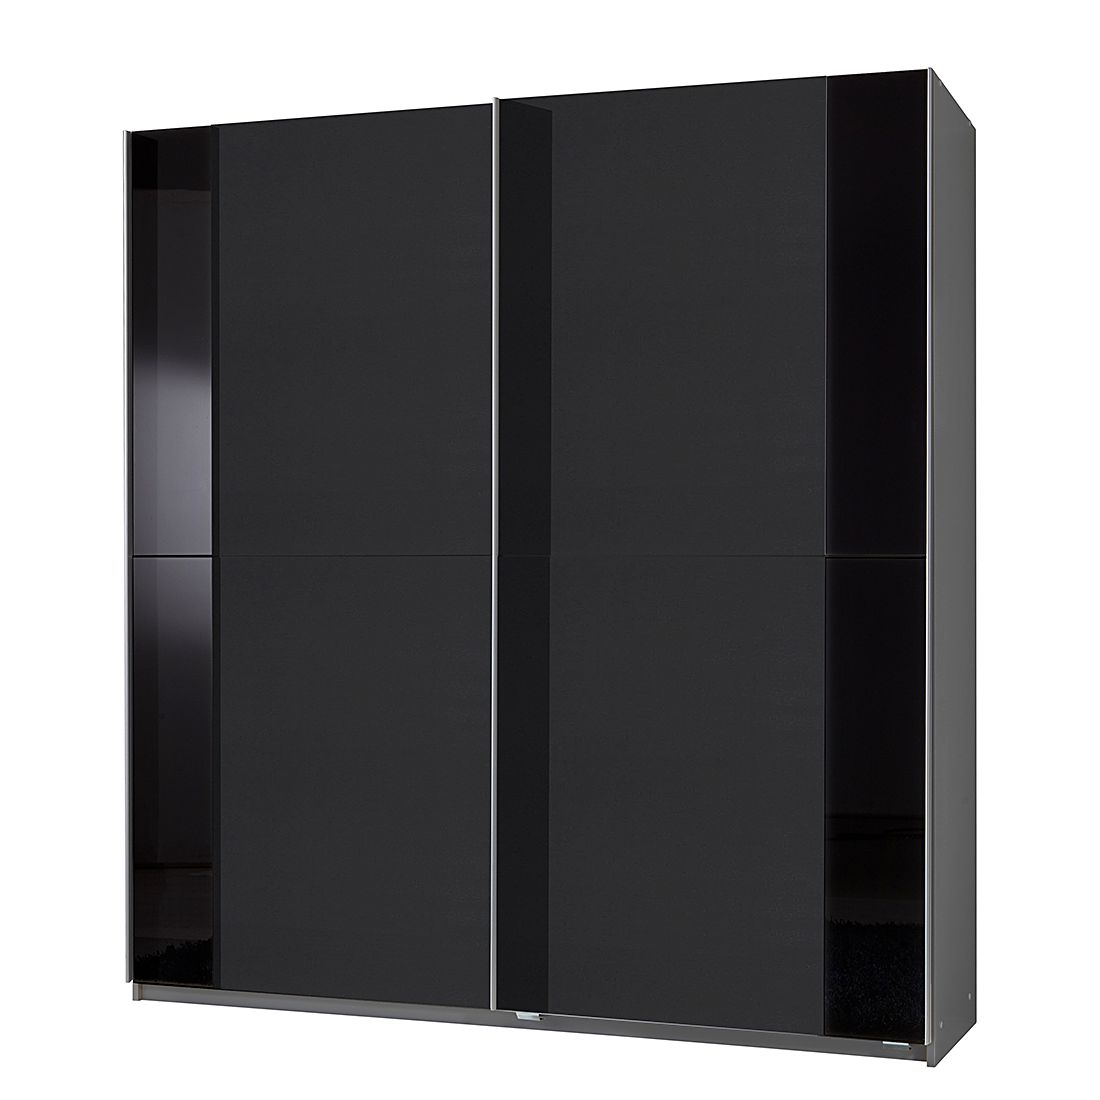 schwebet renschrank arnaud anthrazit alu schwarz schrankbreite 135 cm 2 t rig schrank. Black Bedroom Furniture Sets. Home Design Ideas